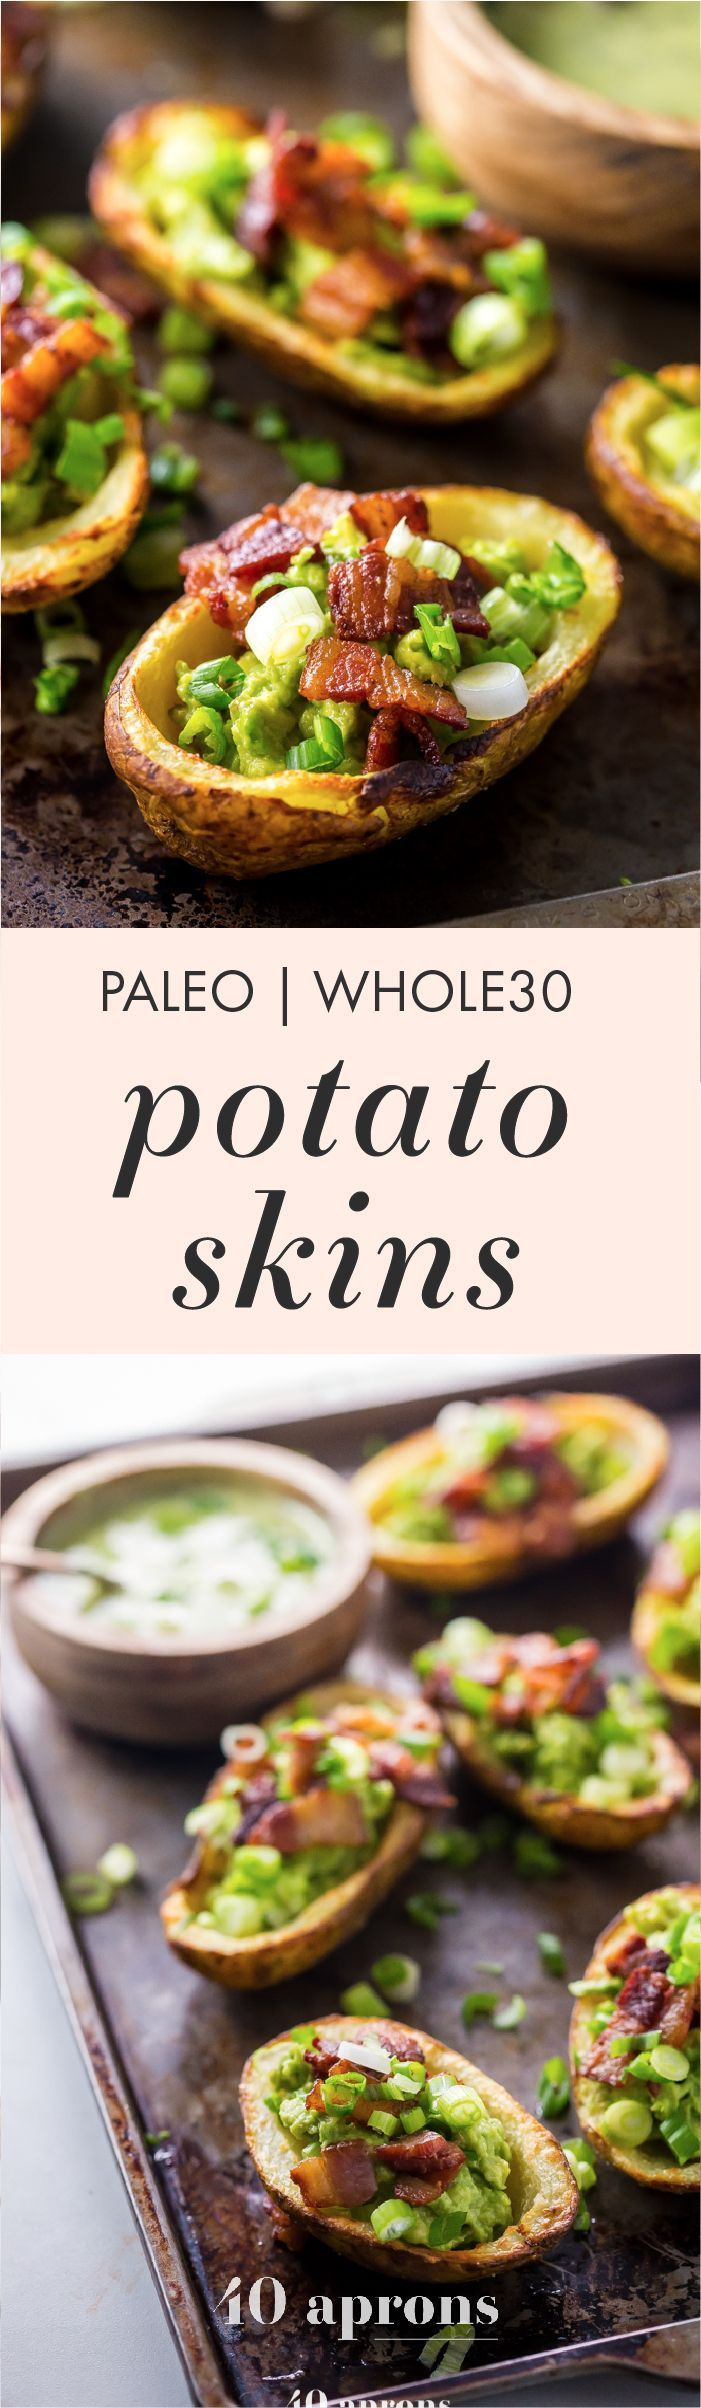 These paleo potato skins are seriously perfect paleo tailgate food! With guacamole, bacon, and ranch dressing, these Whole30 potato skins are delish.